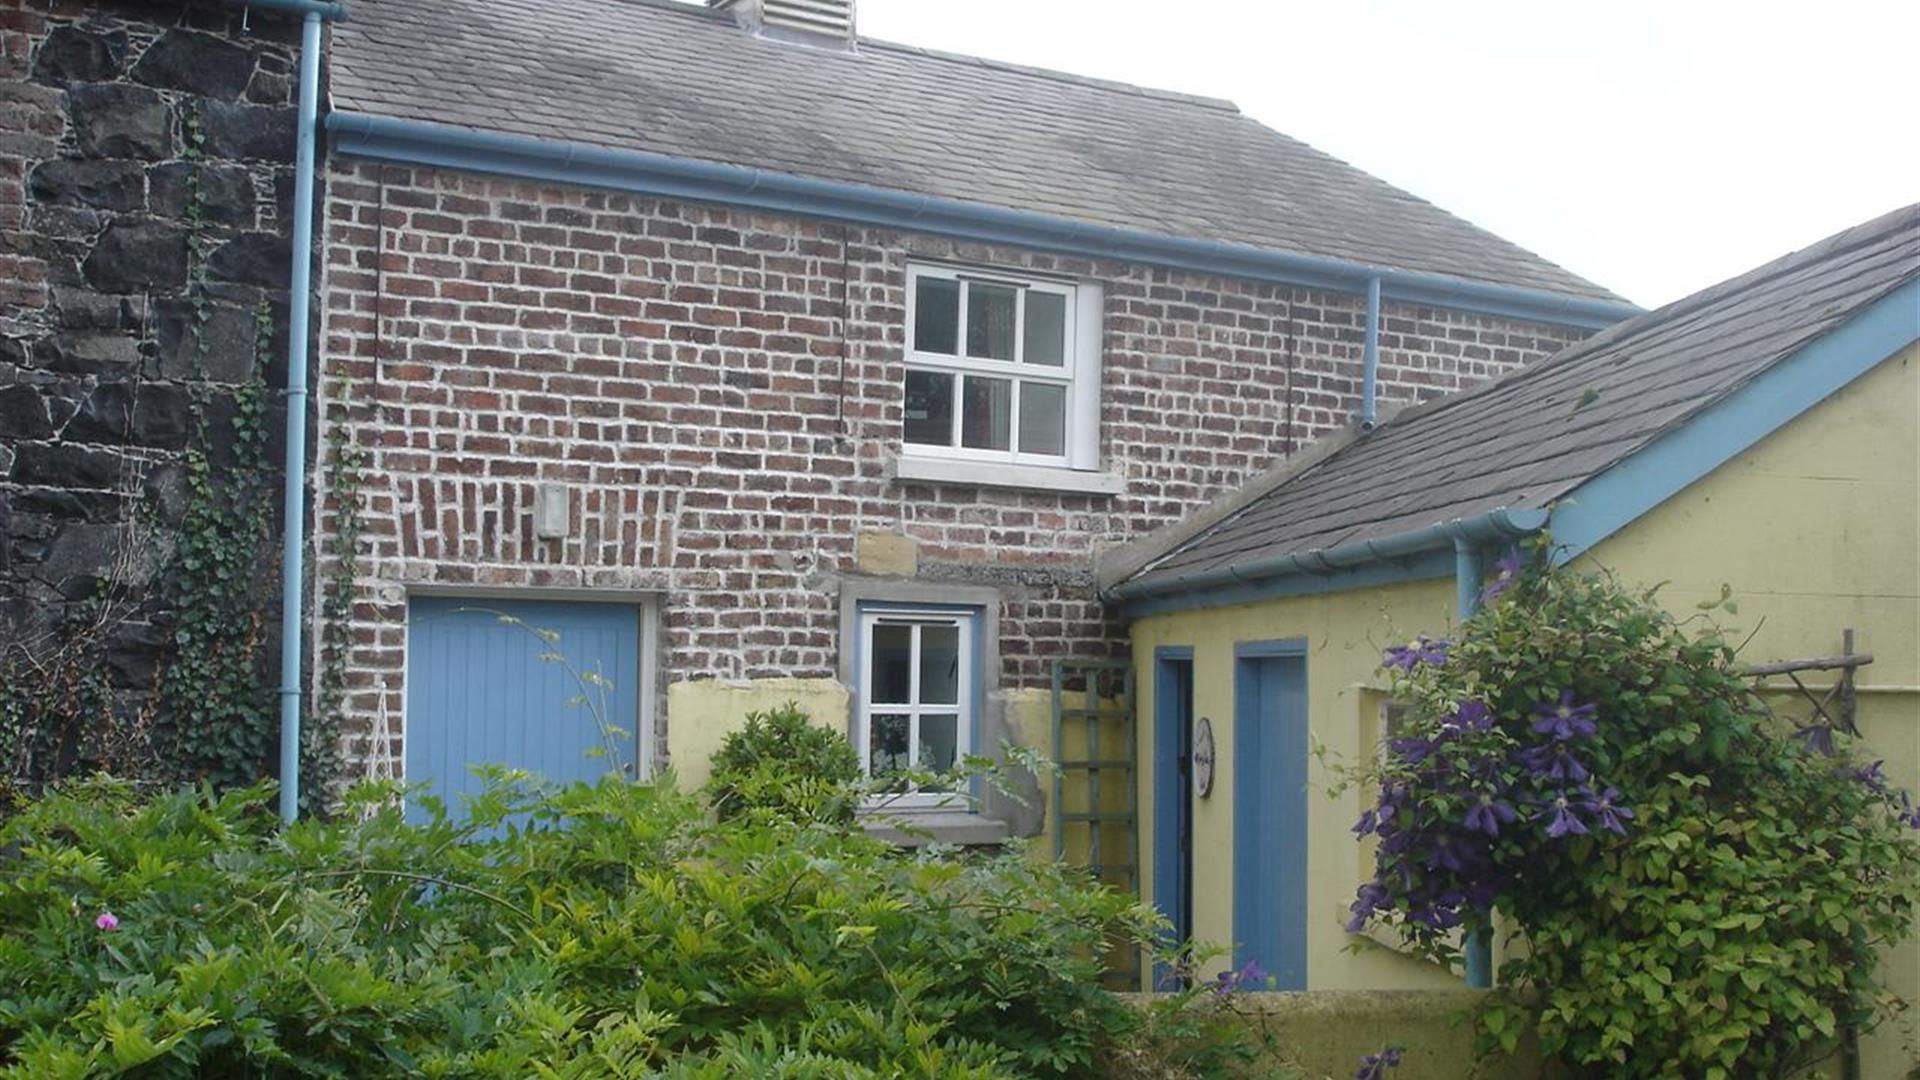 Ballydougan Pottery Courtyard Cottages - Dobsons Corner